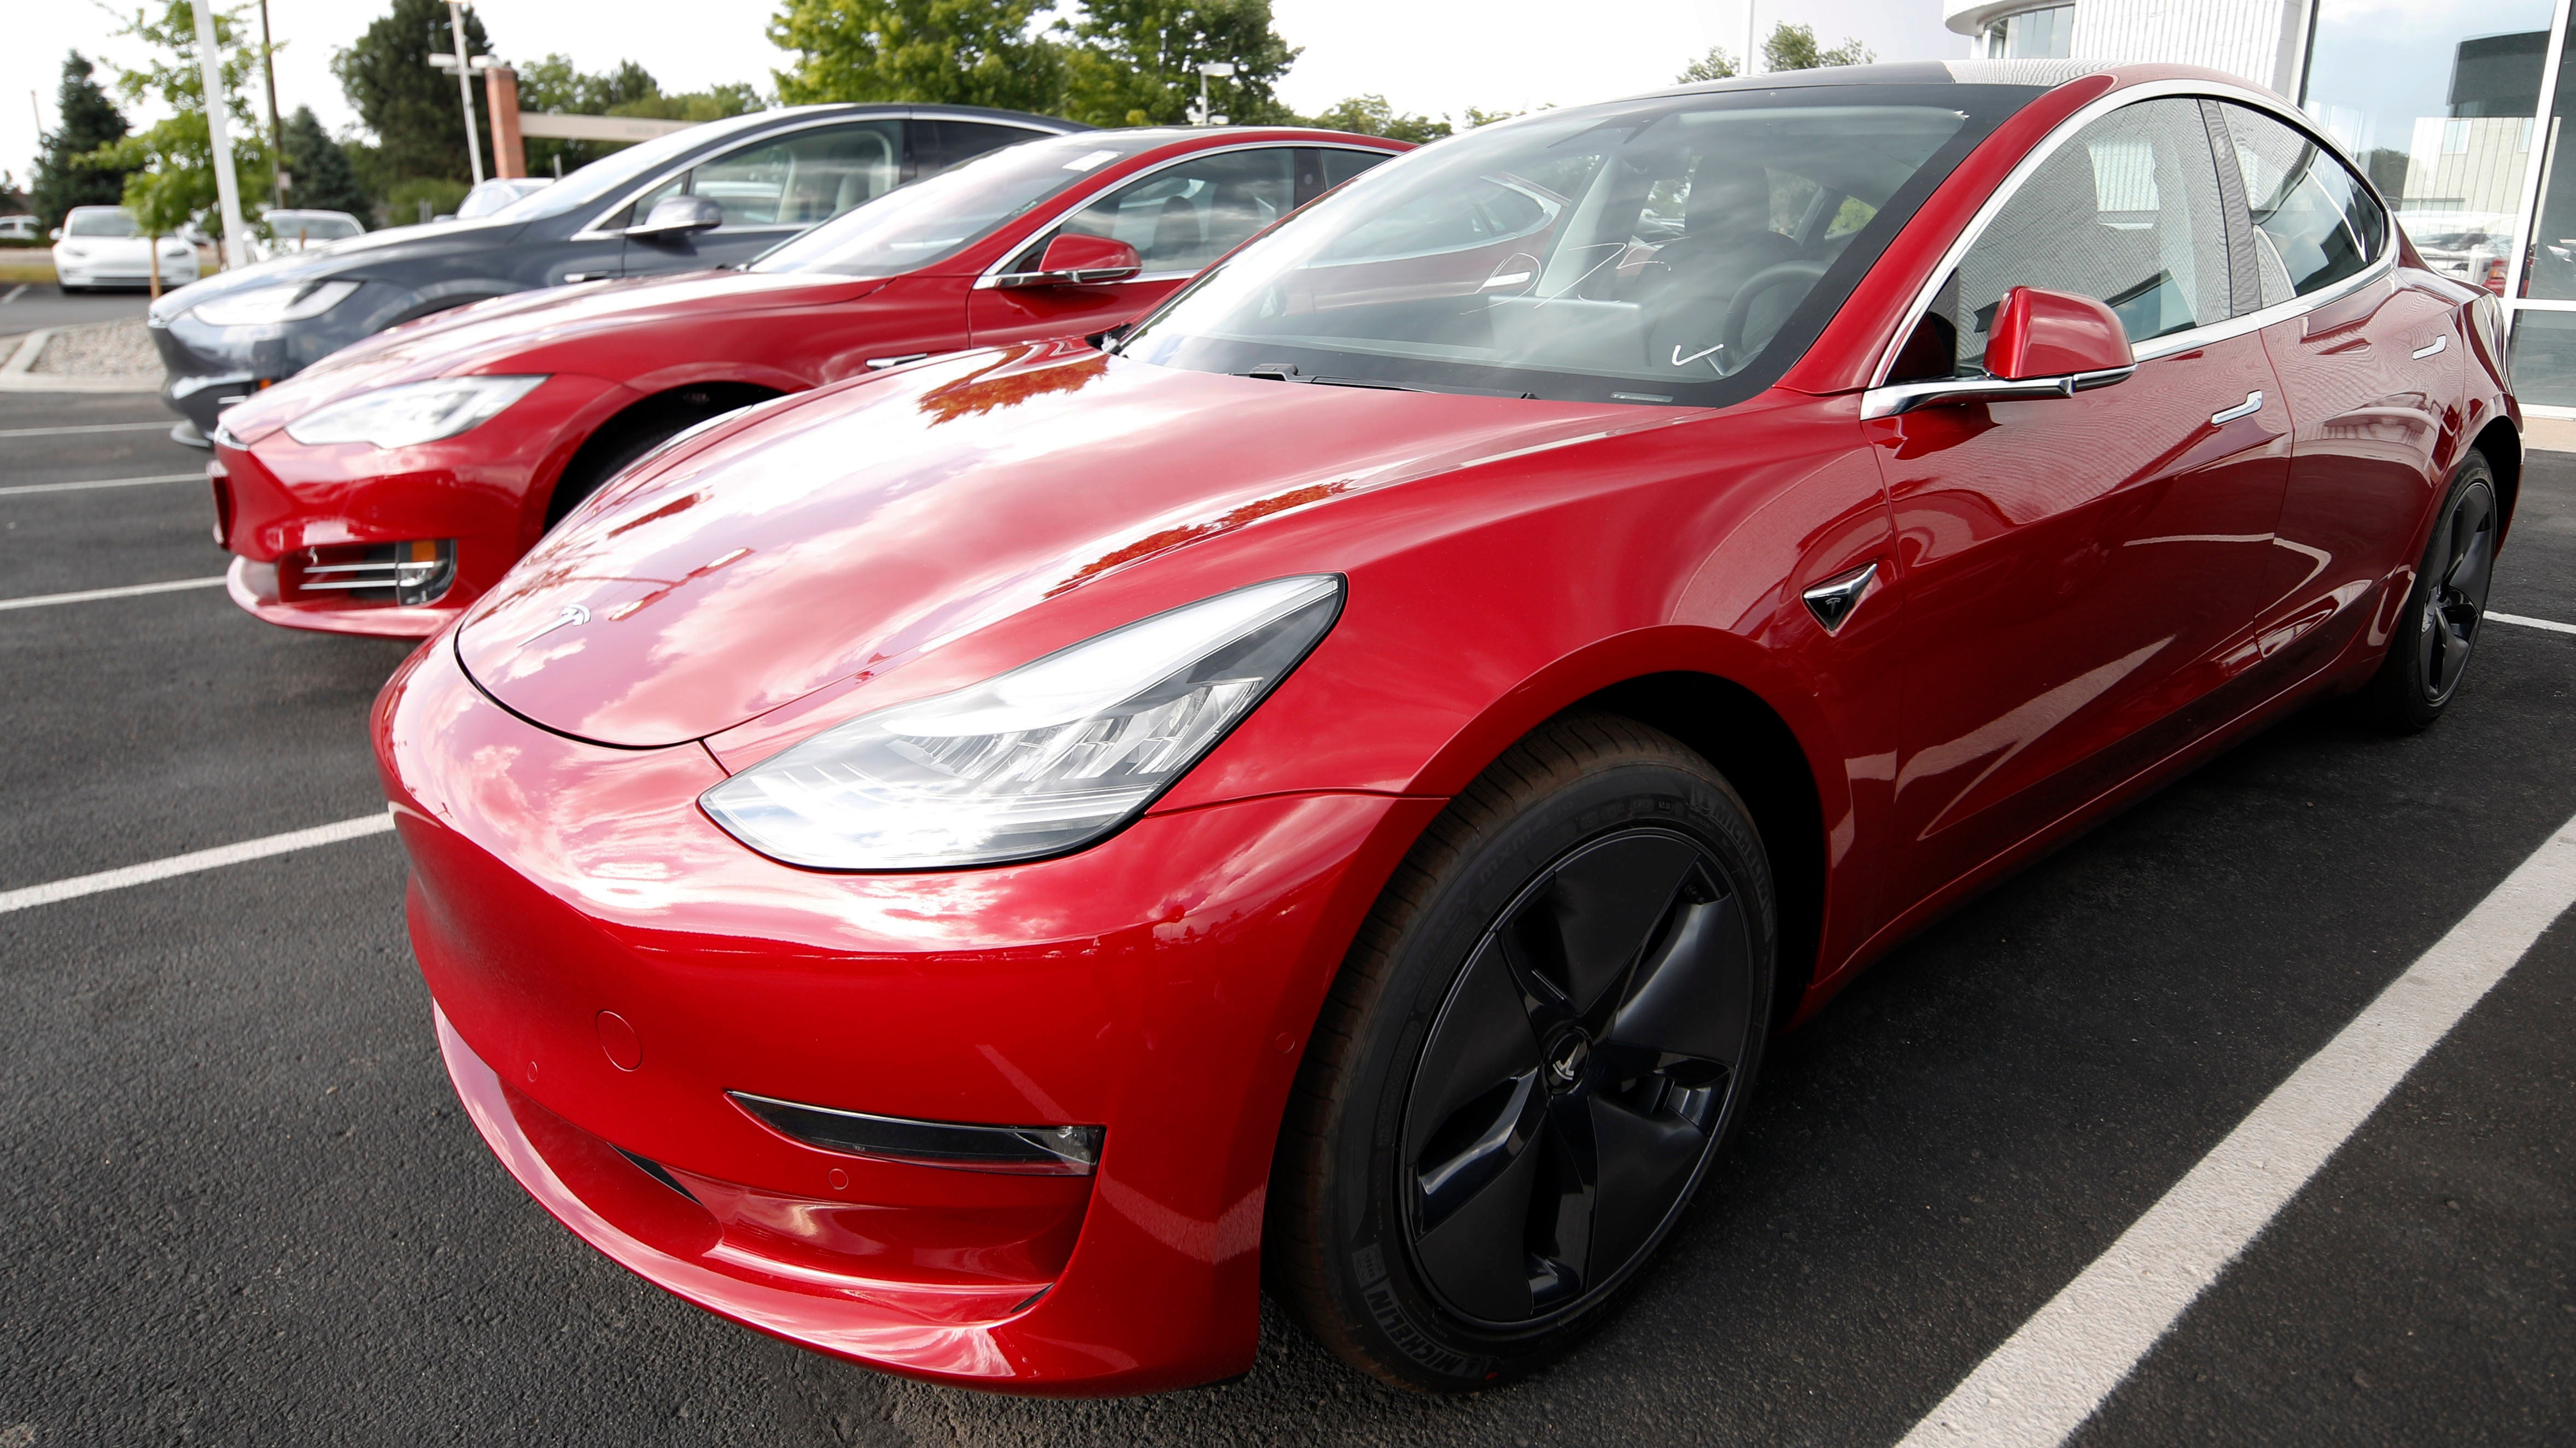 DOJ Is Reportedly Investigating Tesla's Claims About Its Model 3 Production